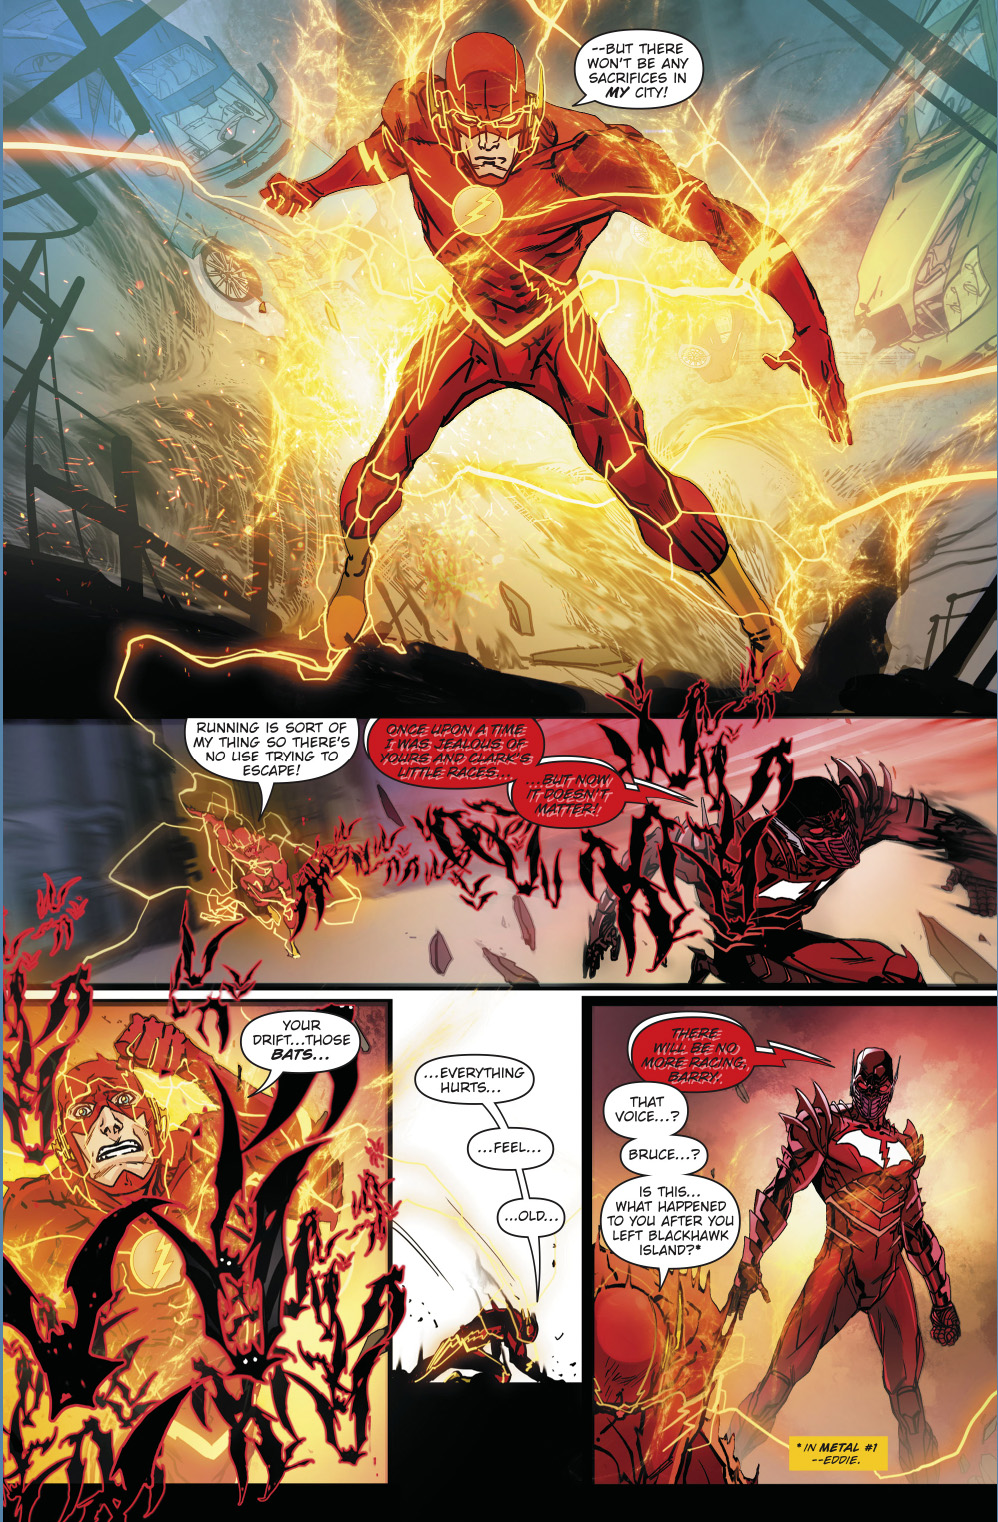 The Flash Meets The Red Death